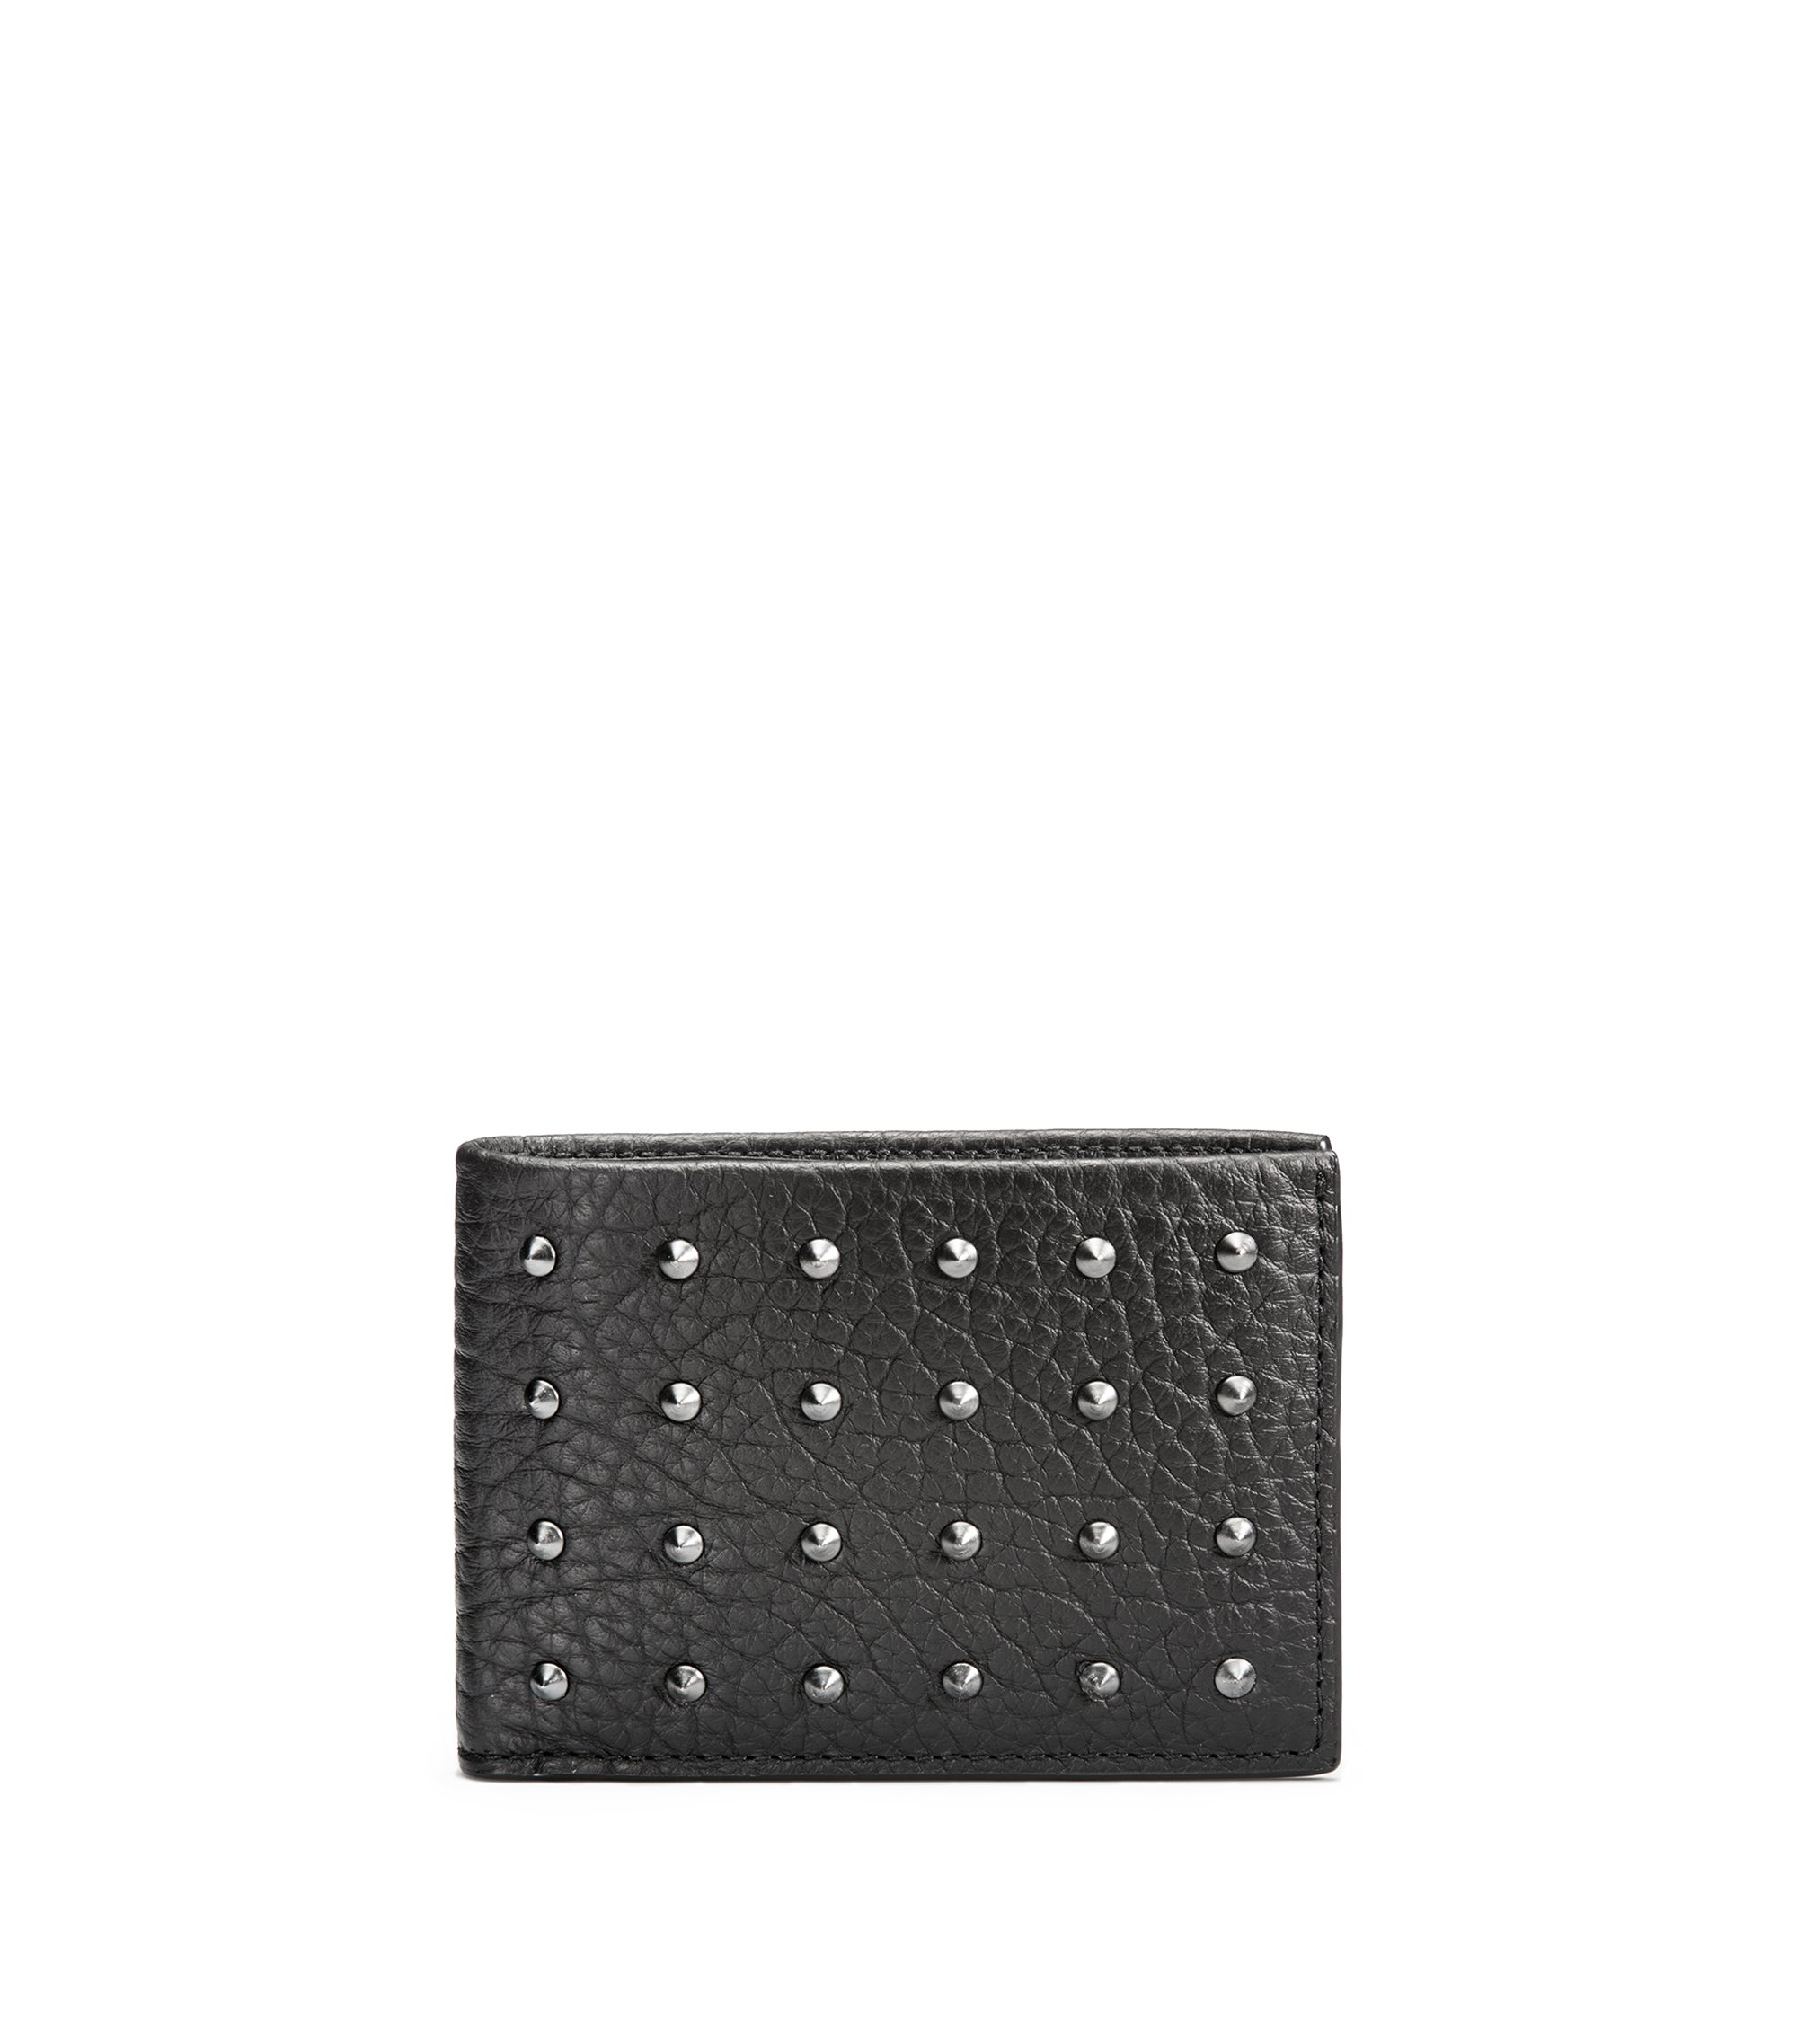 Billfold wallet in studded grainy leather, Black